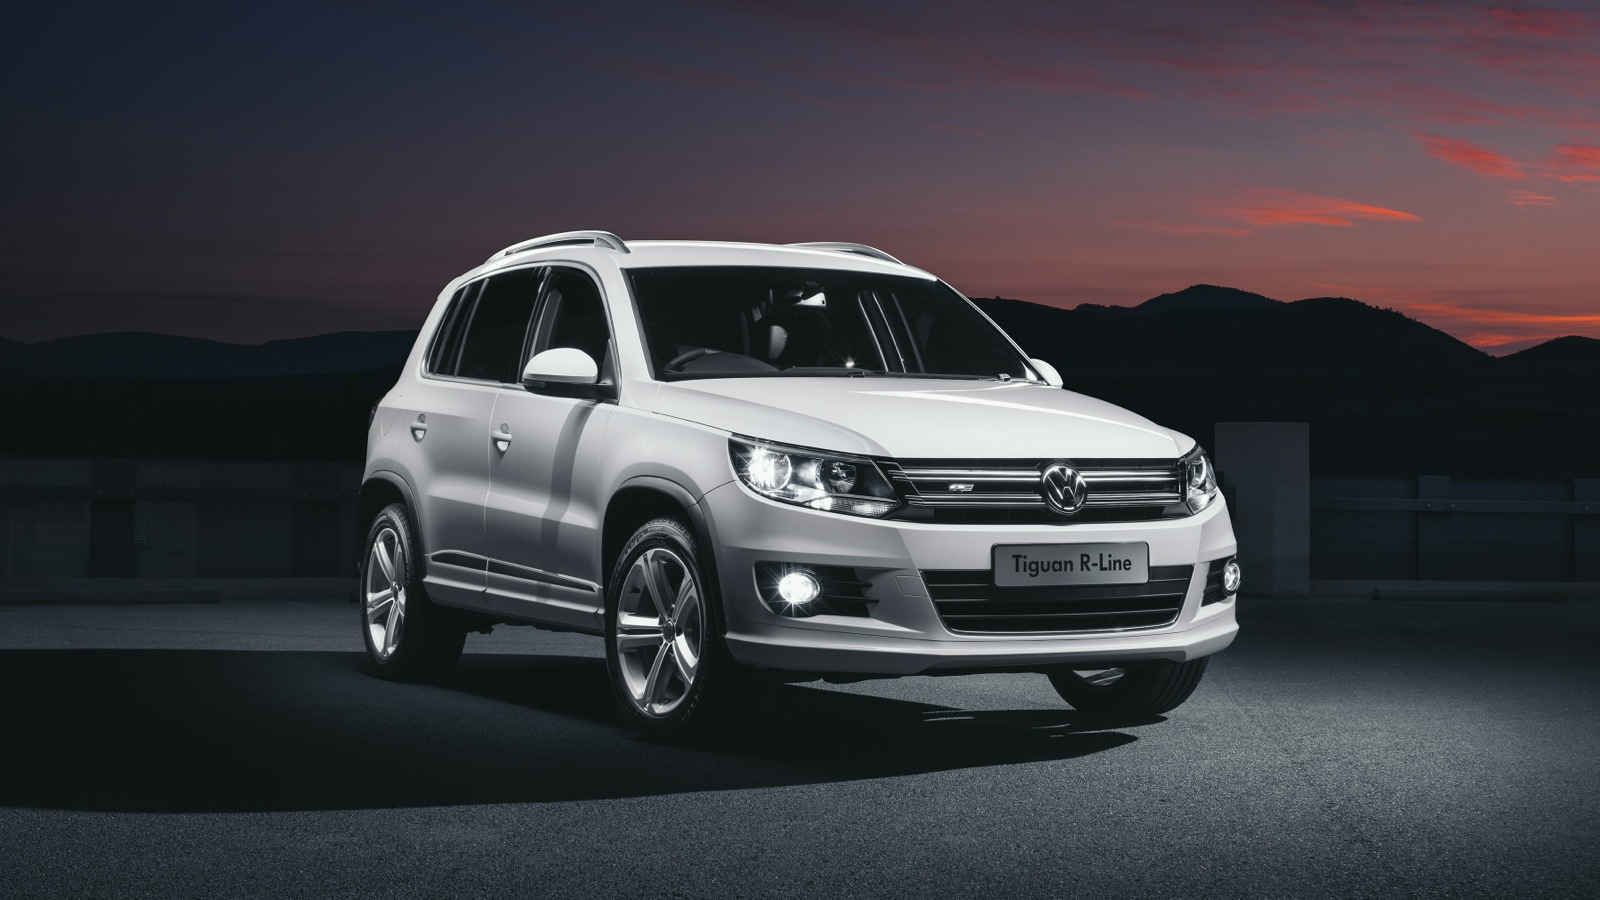 volkswagen r line expands to golf wagon and tiguan ranges photos 1 of 8. Black Bedroom Furniture Sets. Home Design Ideas